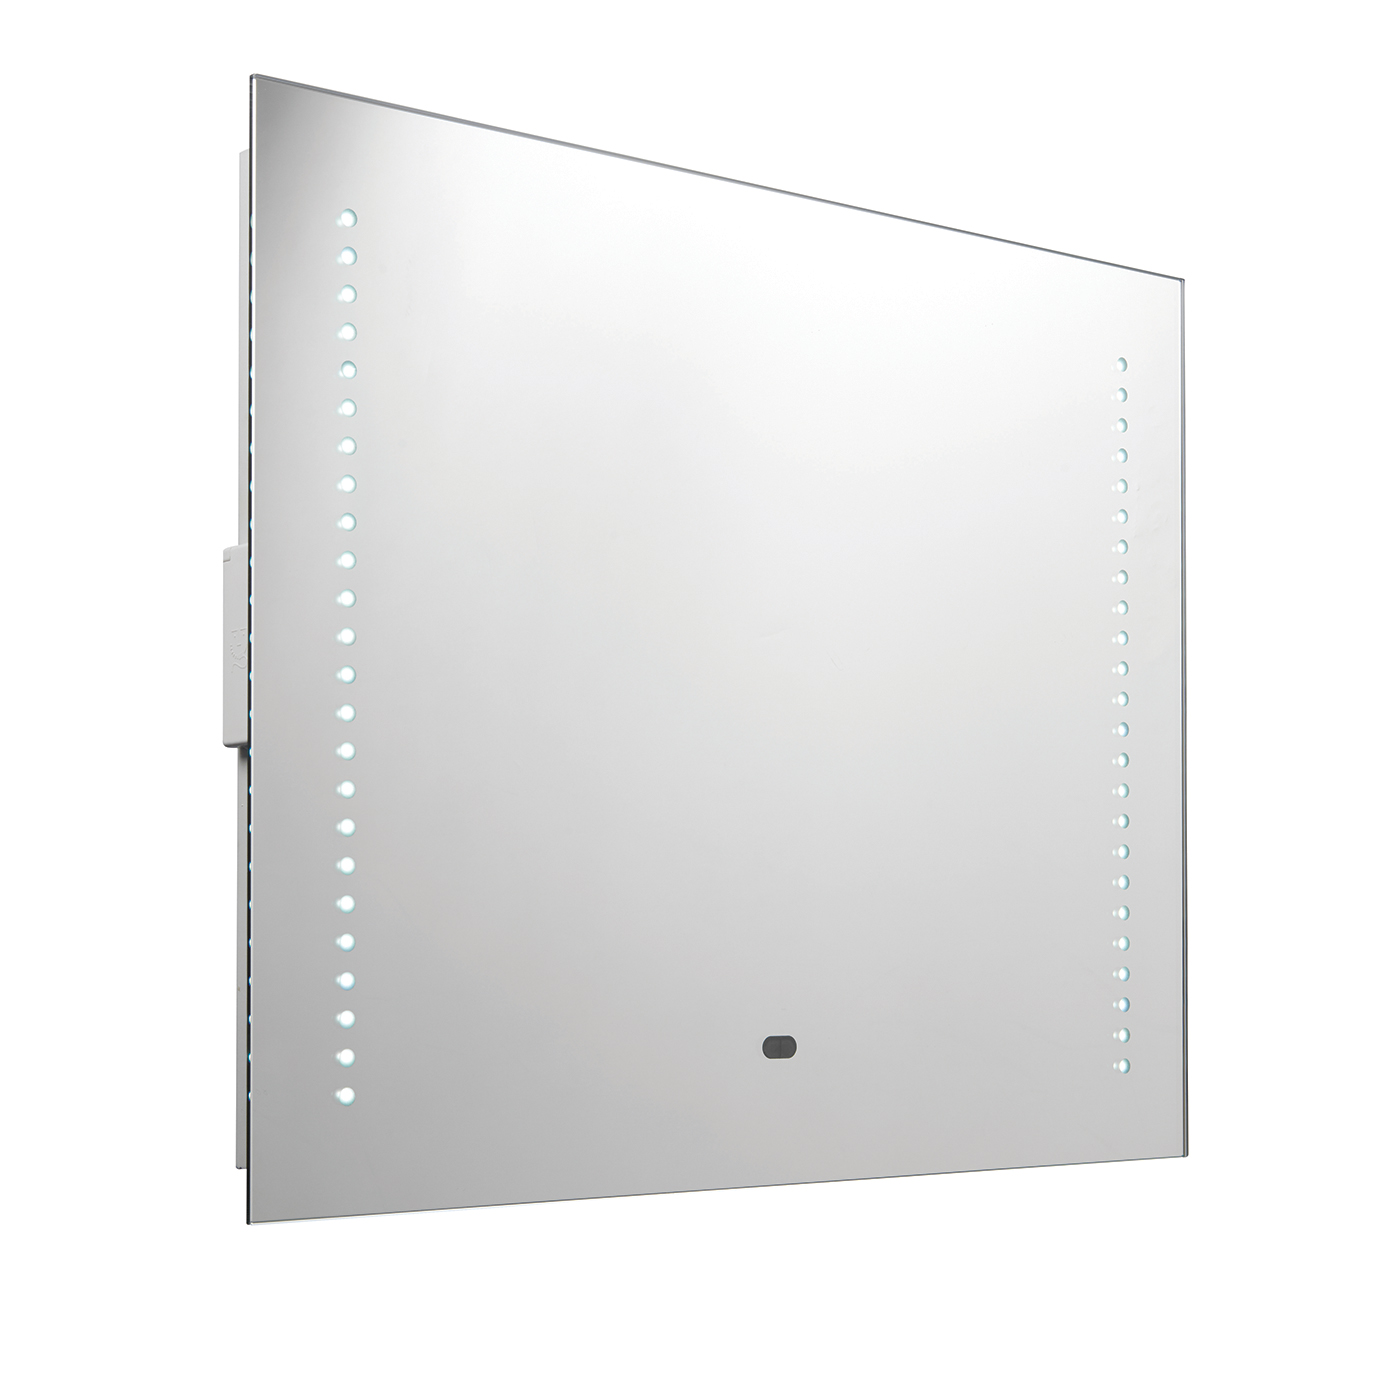 Rift RGB LED shaver bathroom mirror IP44 10W colour change H: 500mm W: 600mm